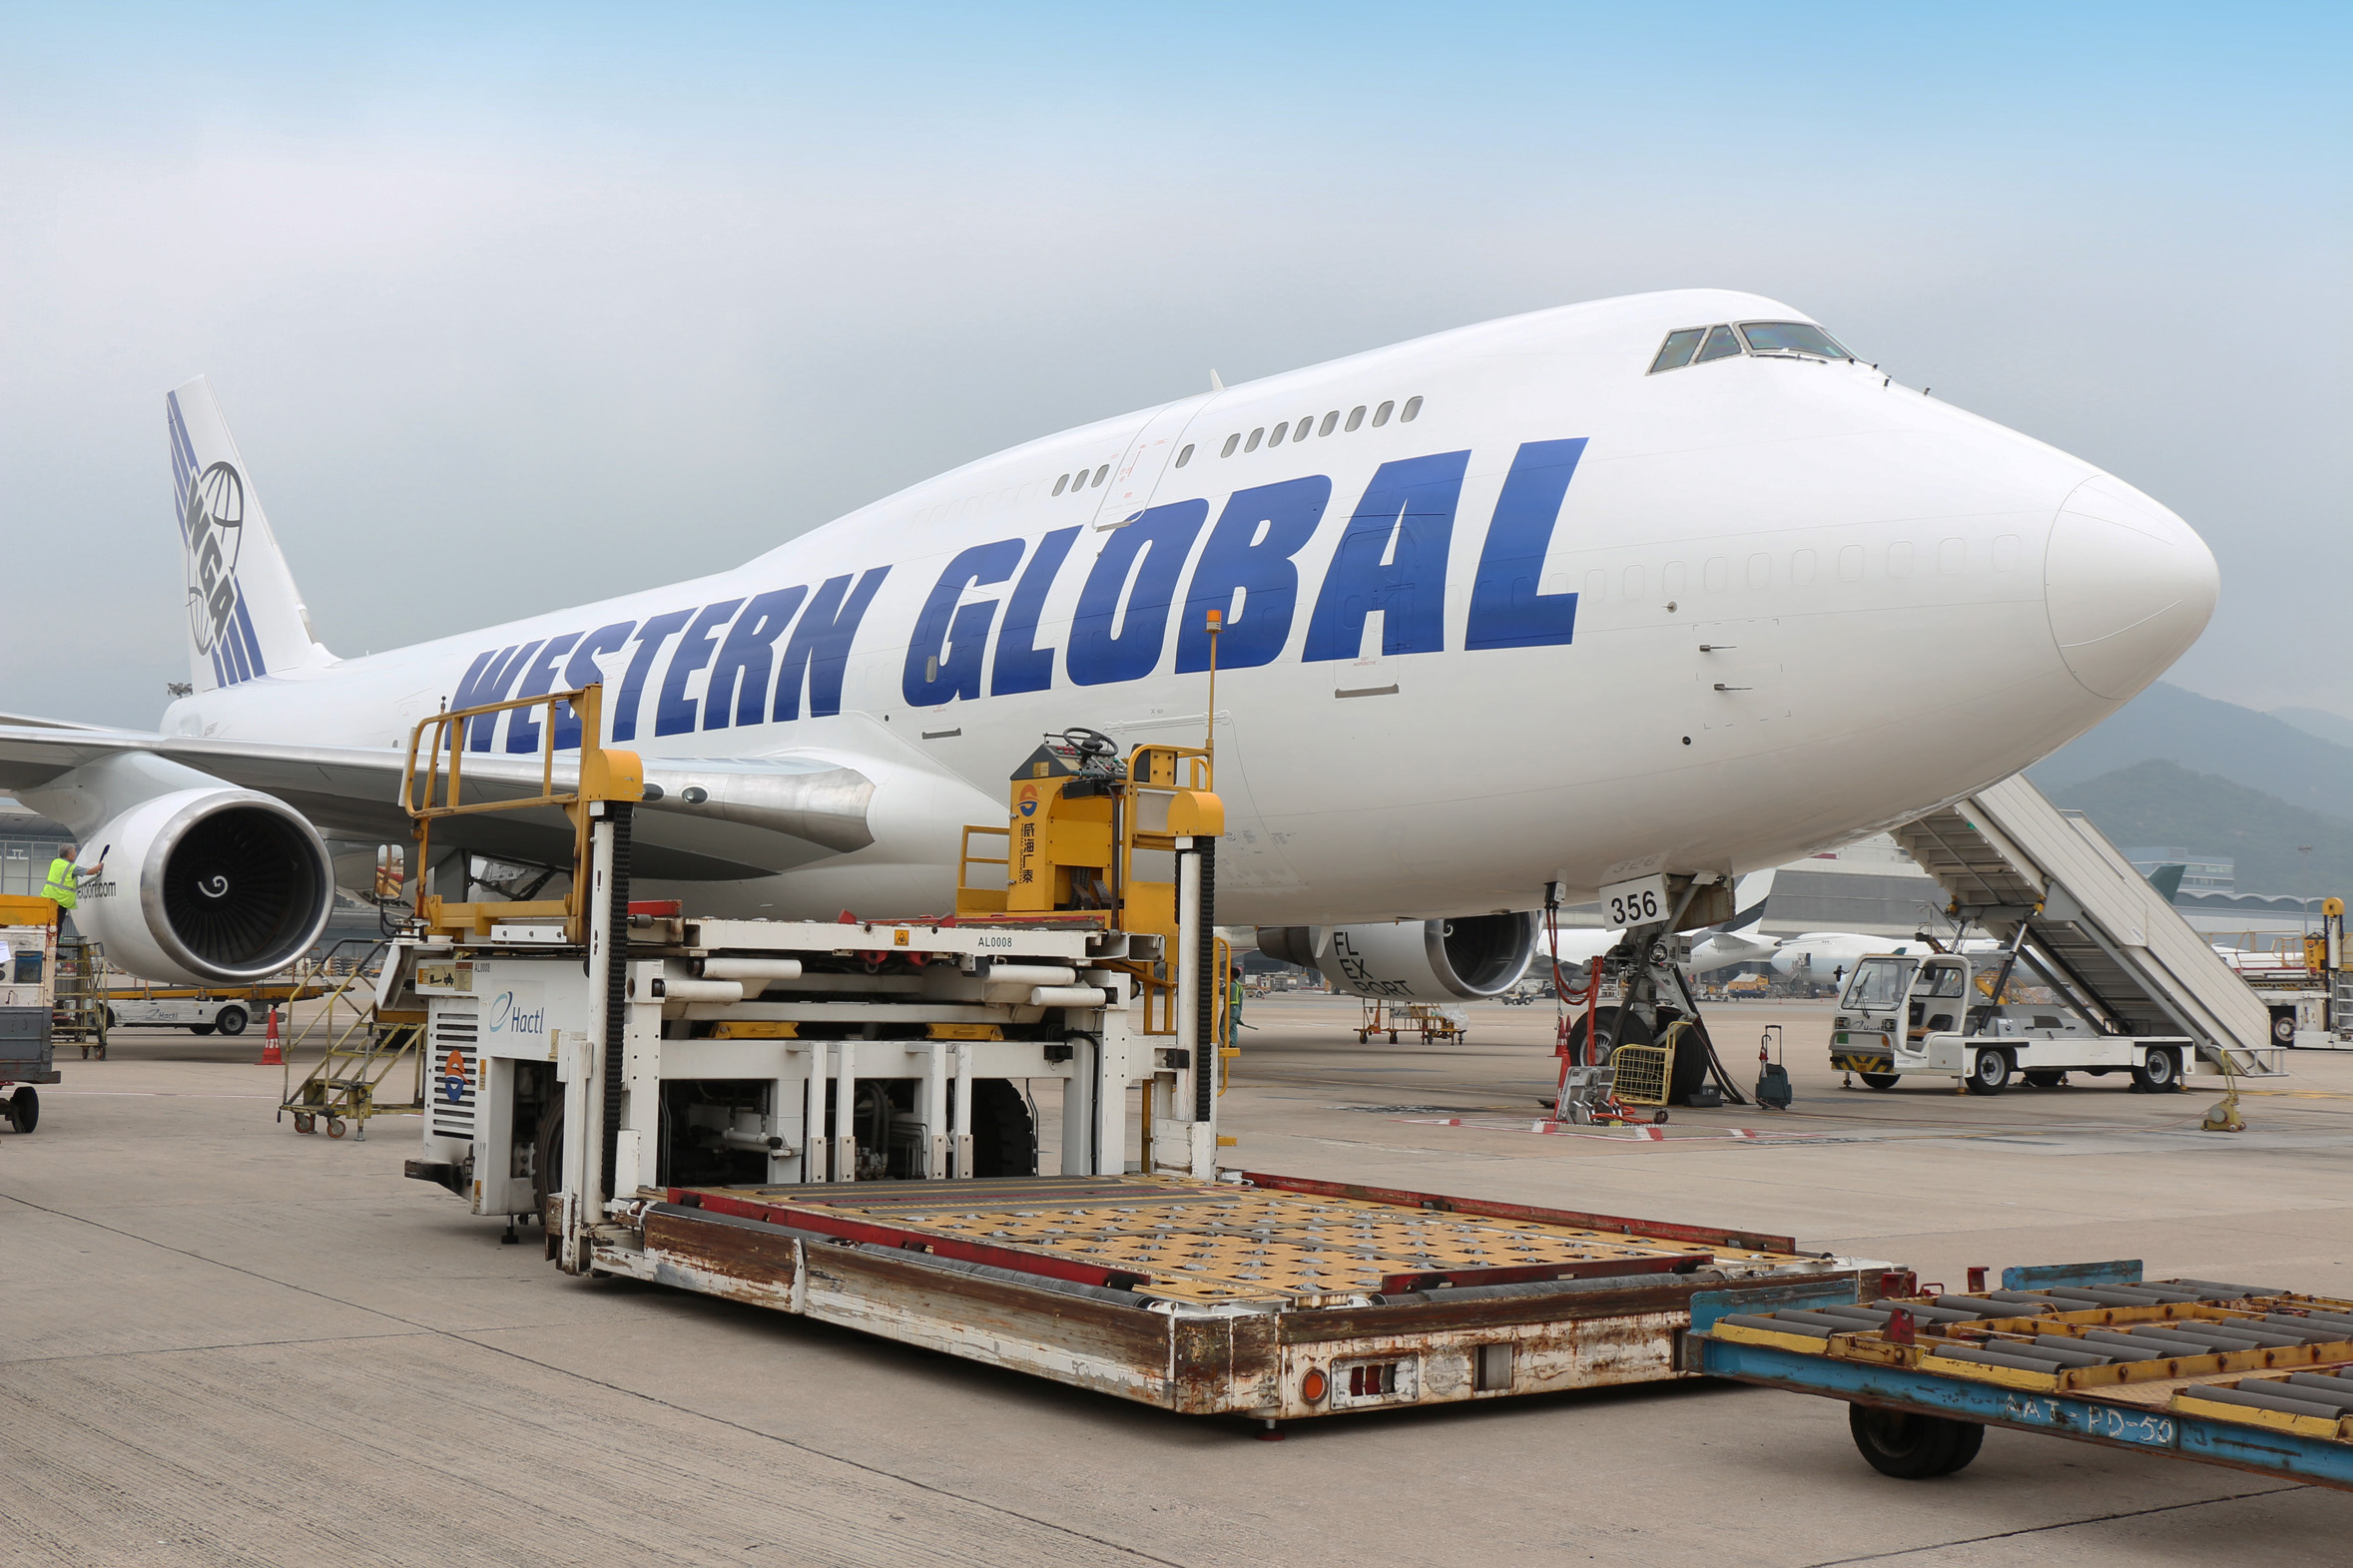 Fast-growing Western Global asks for fleet restrictions to be removed